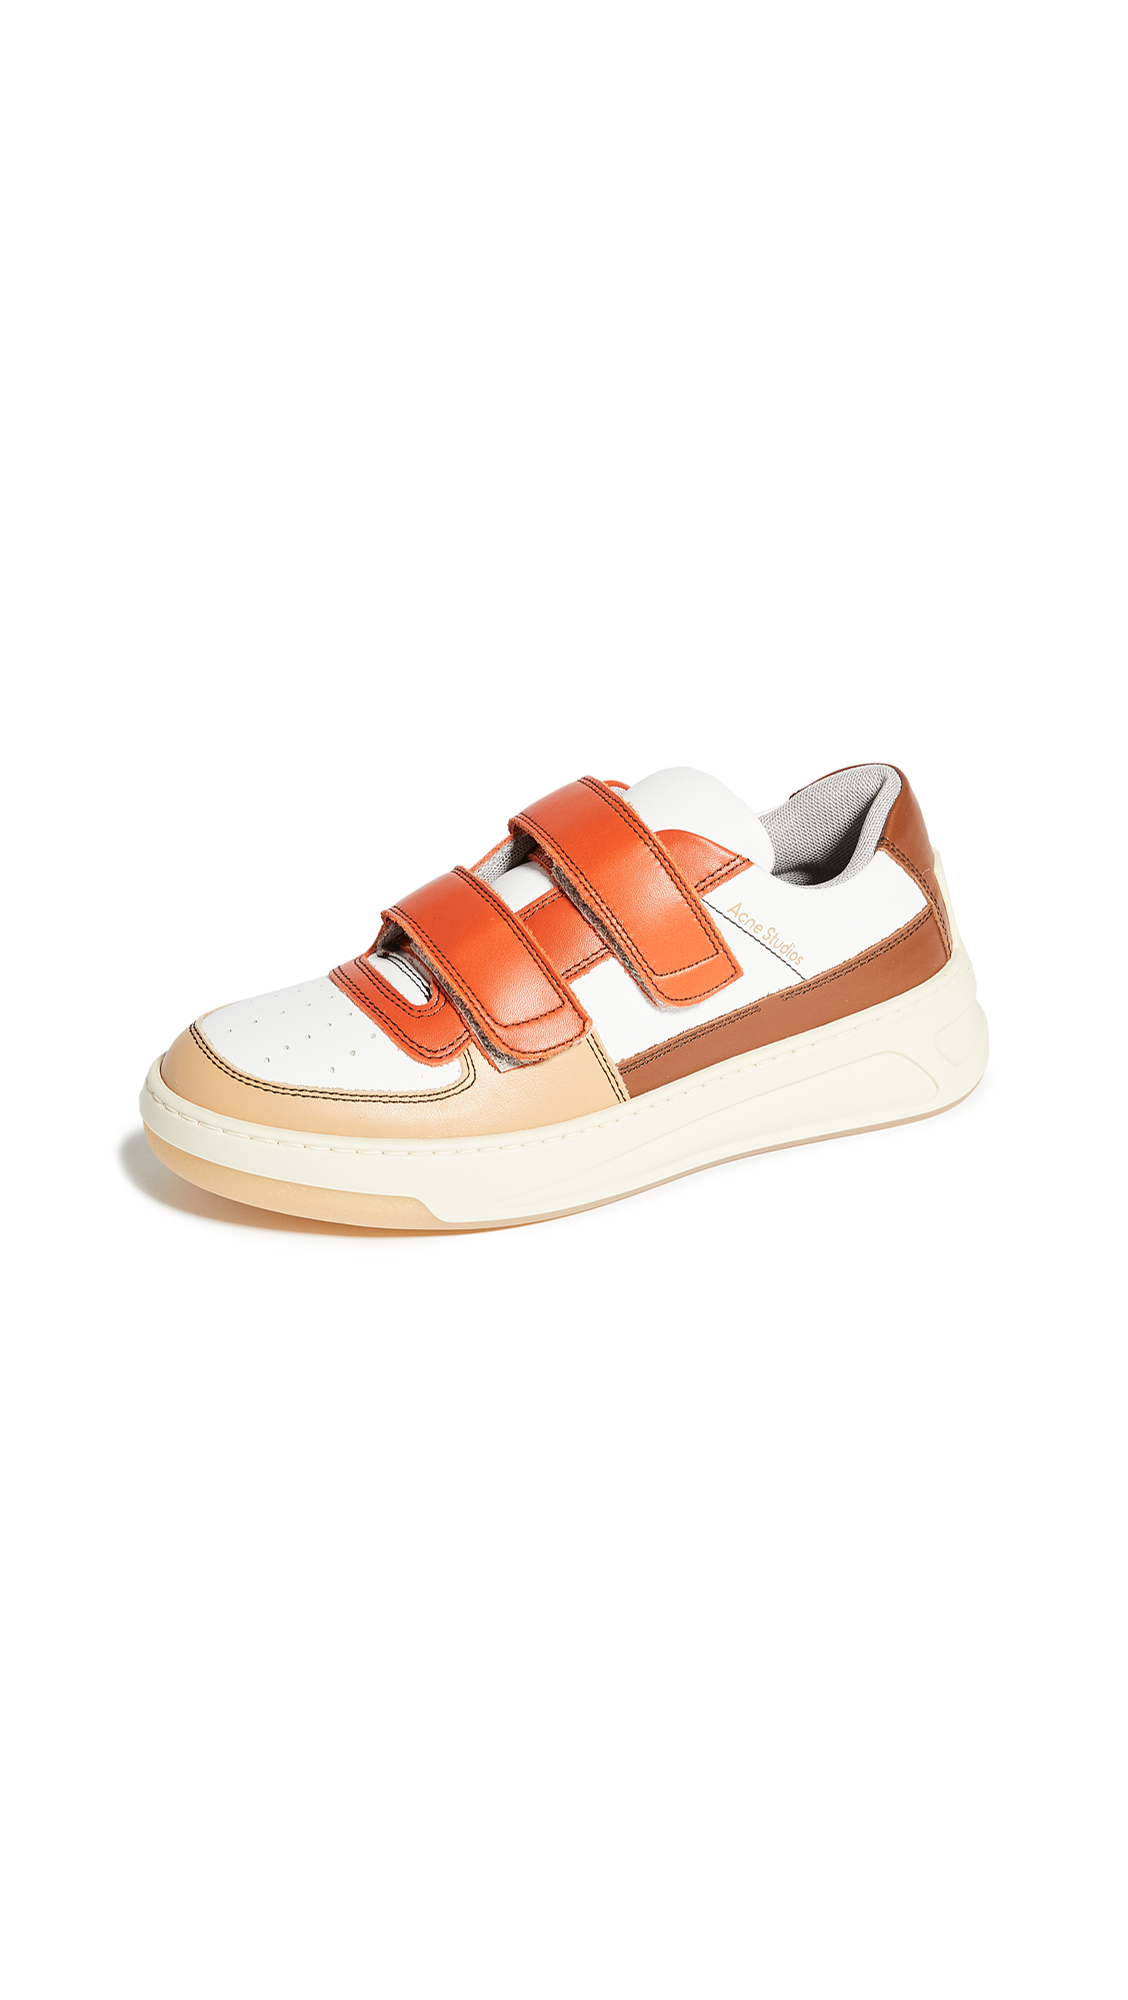 Acne Studios Steffey Mix Sneakers